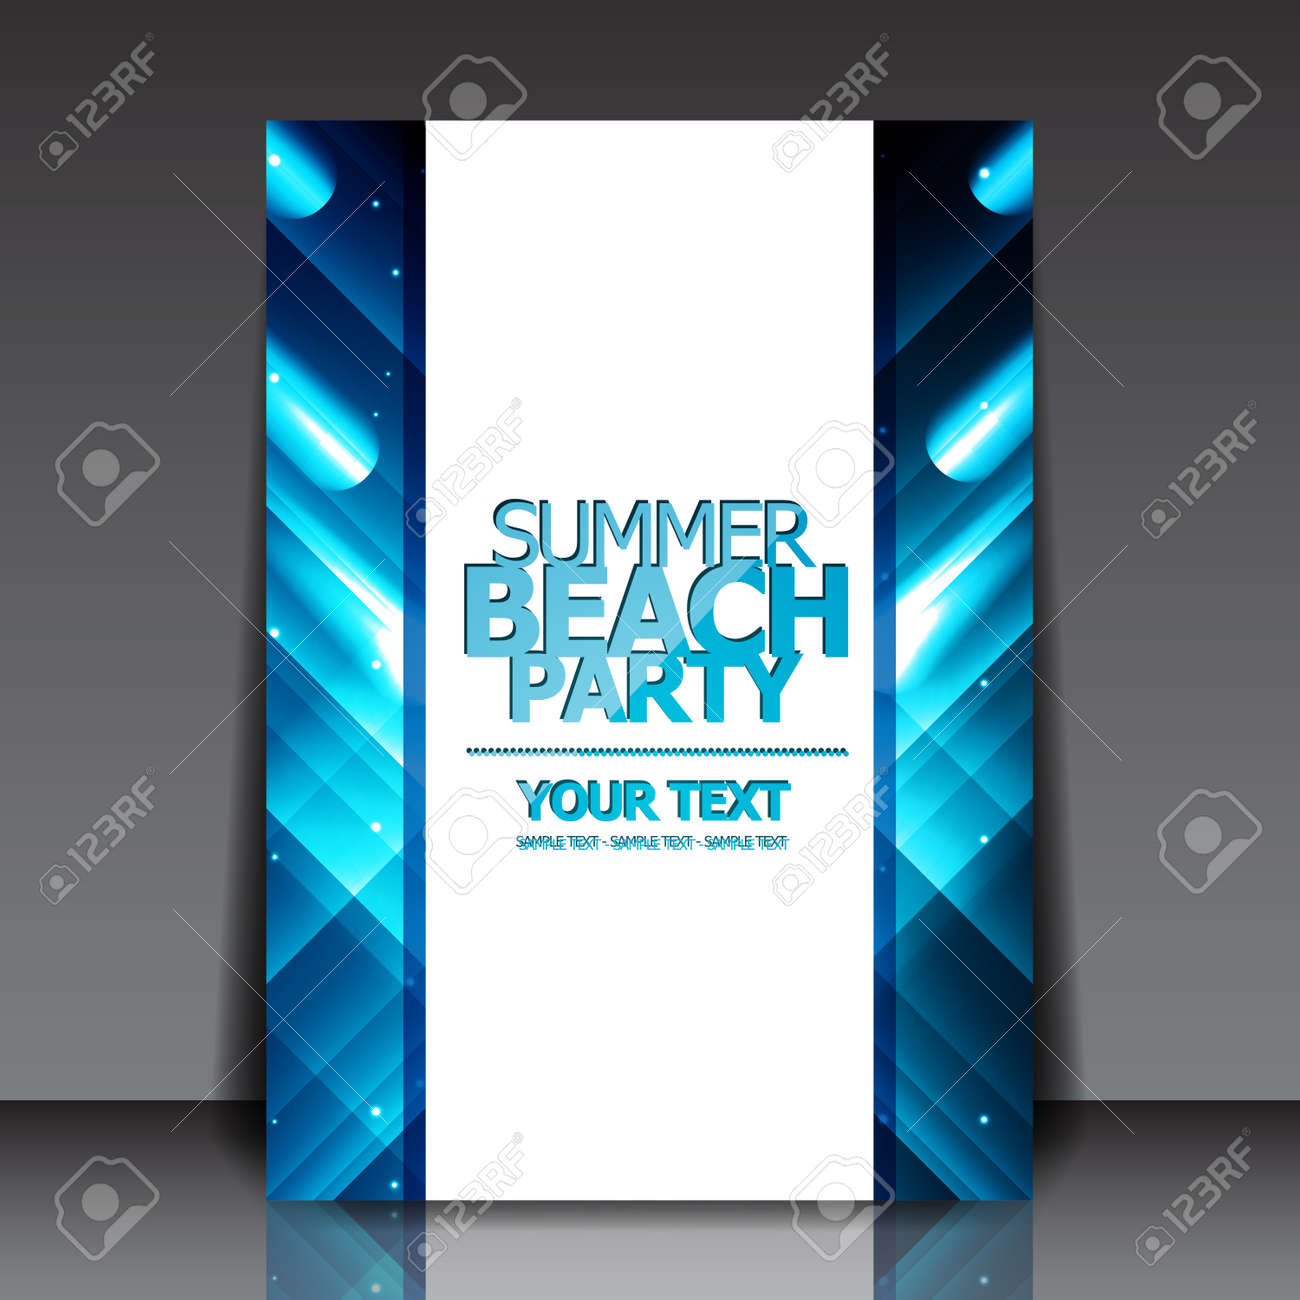 Design for Summer Party Flyer Stock Vector - 18946498